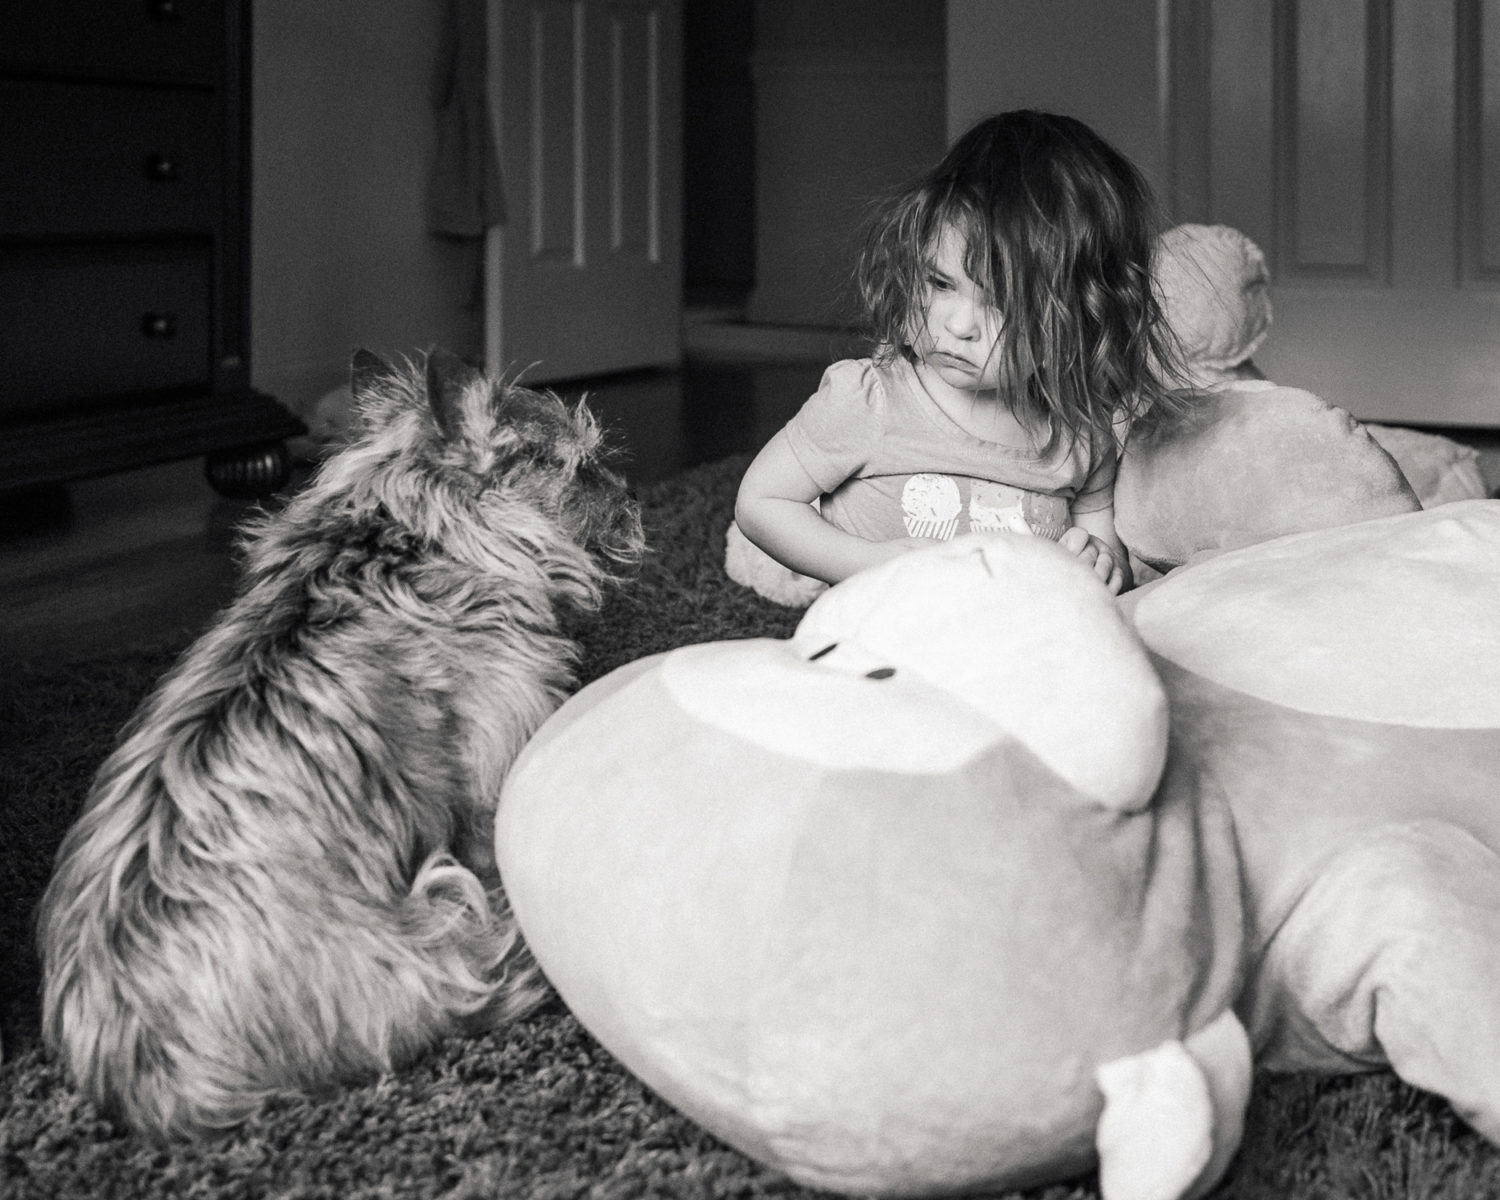 Toddler and dog looking at each other